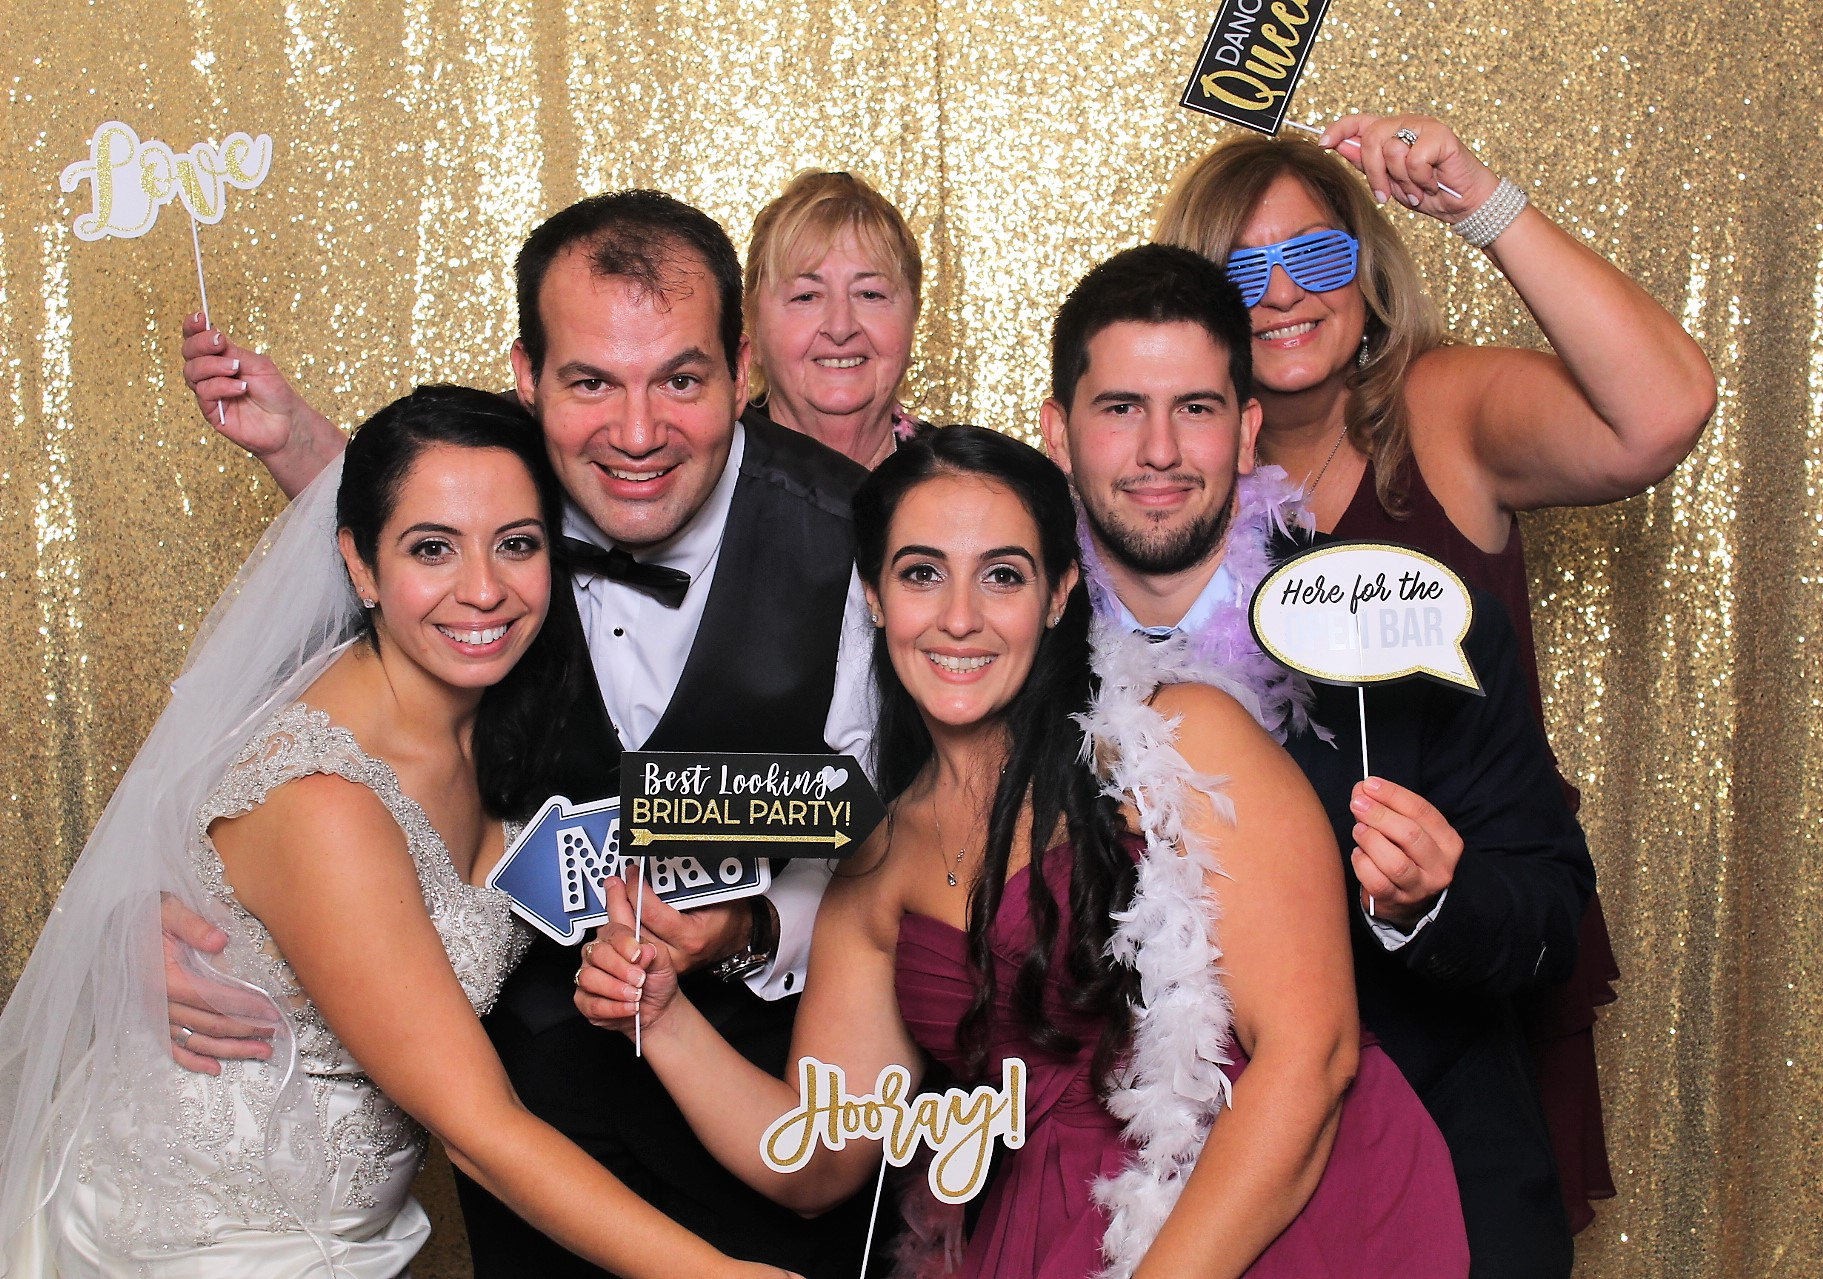 andover country club, destination wedding photo booth